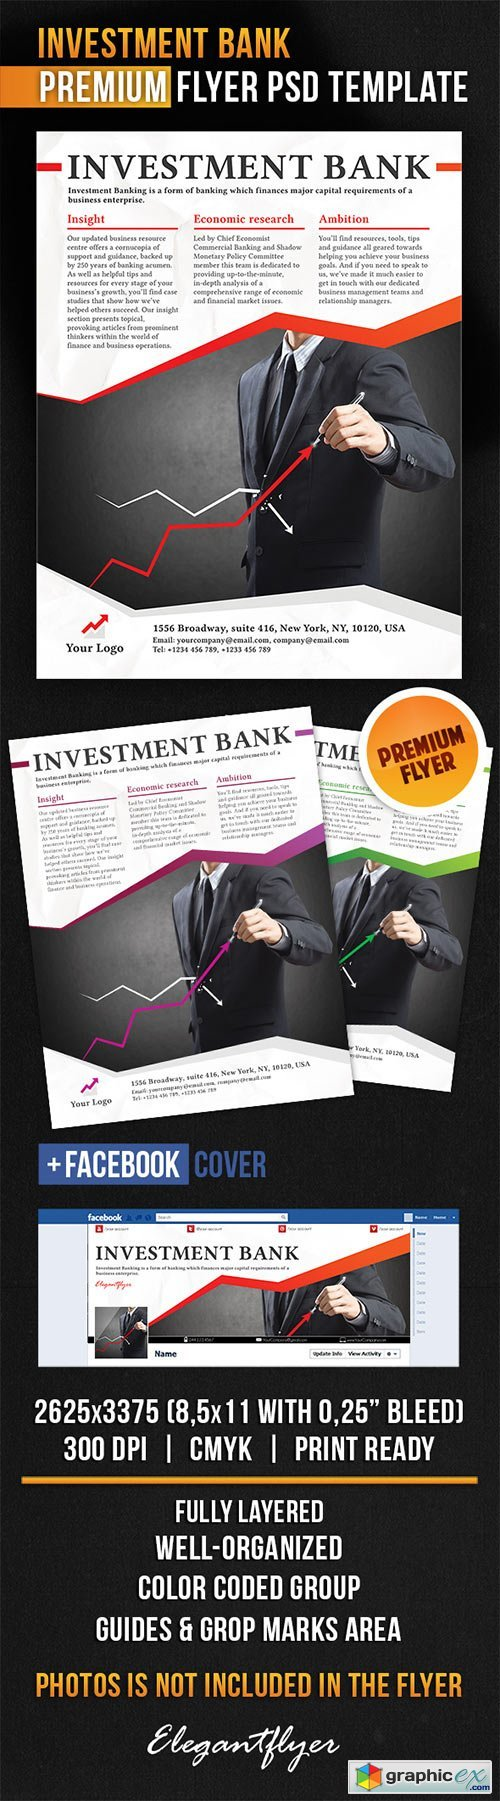 Investment Bank Flyer PSD Template + Facebook Cover